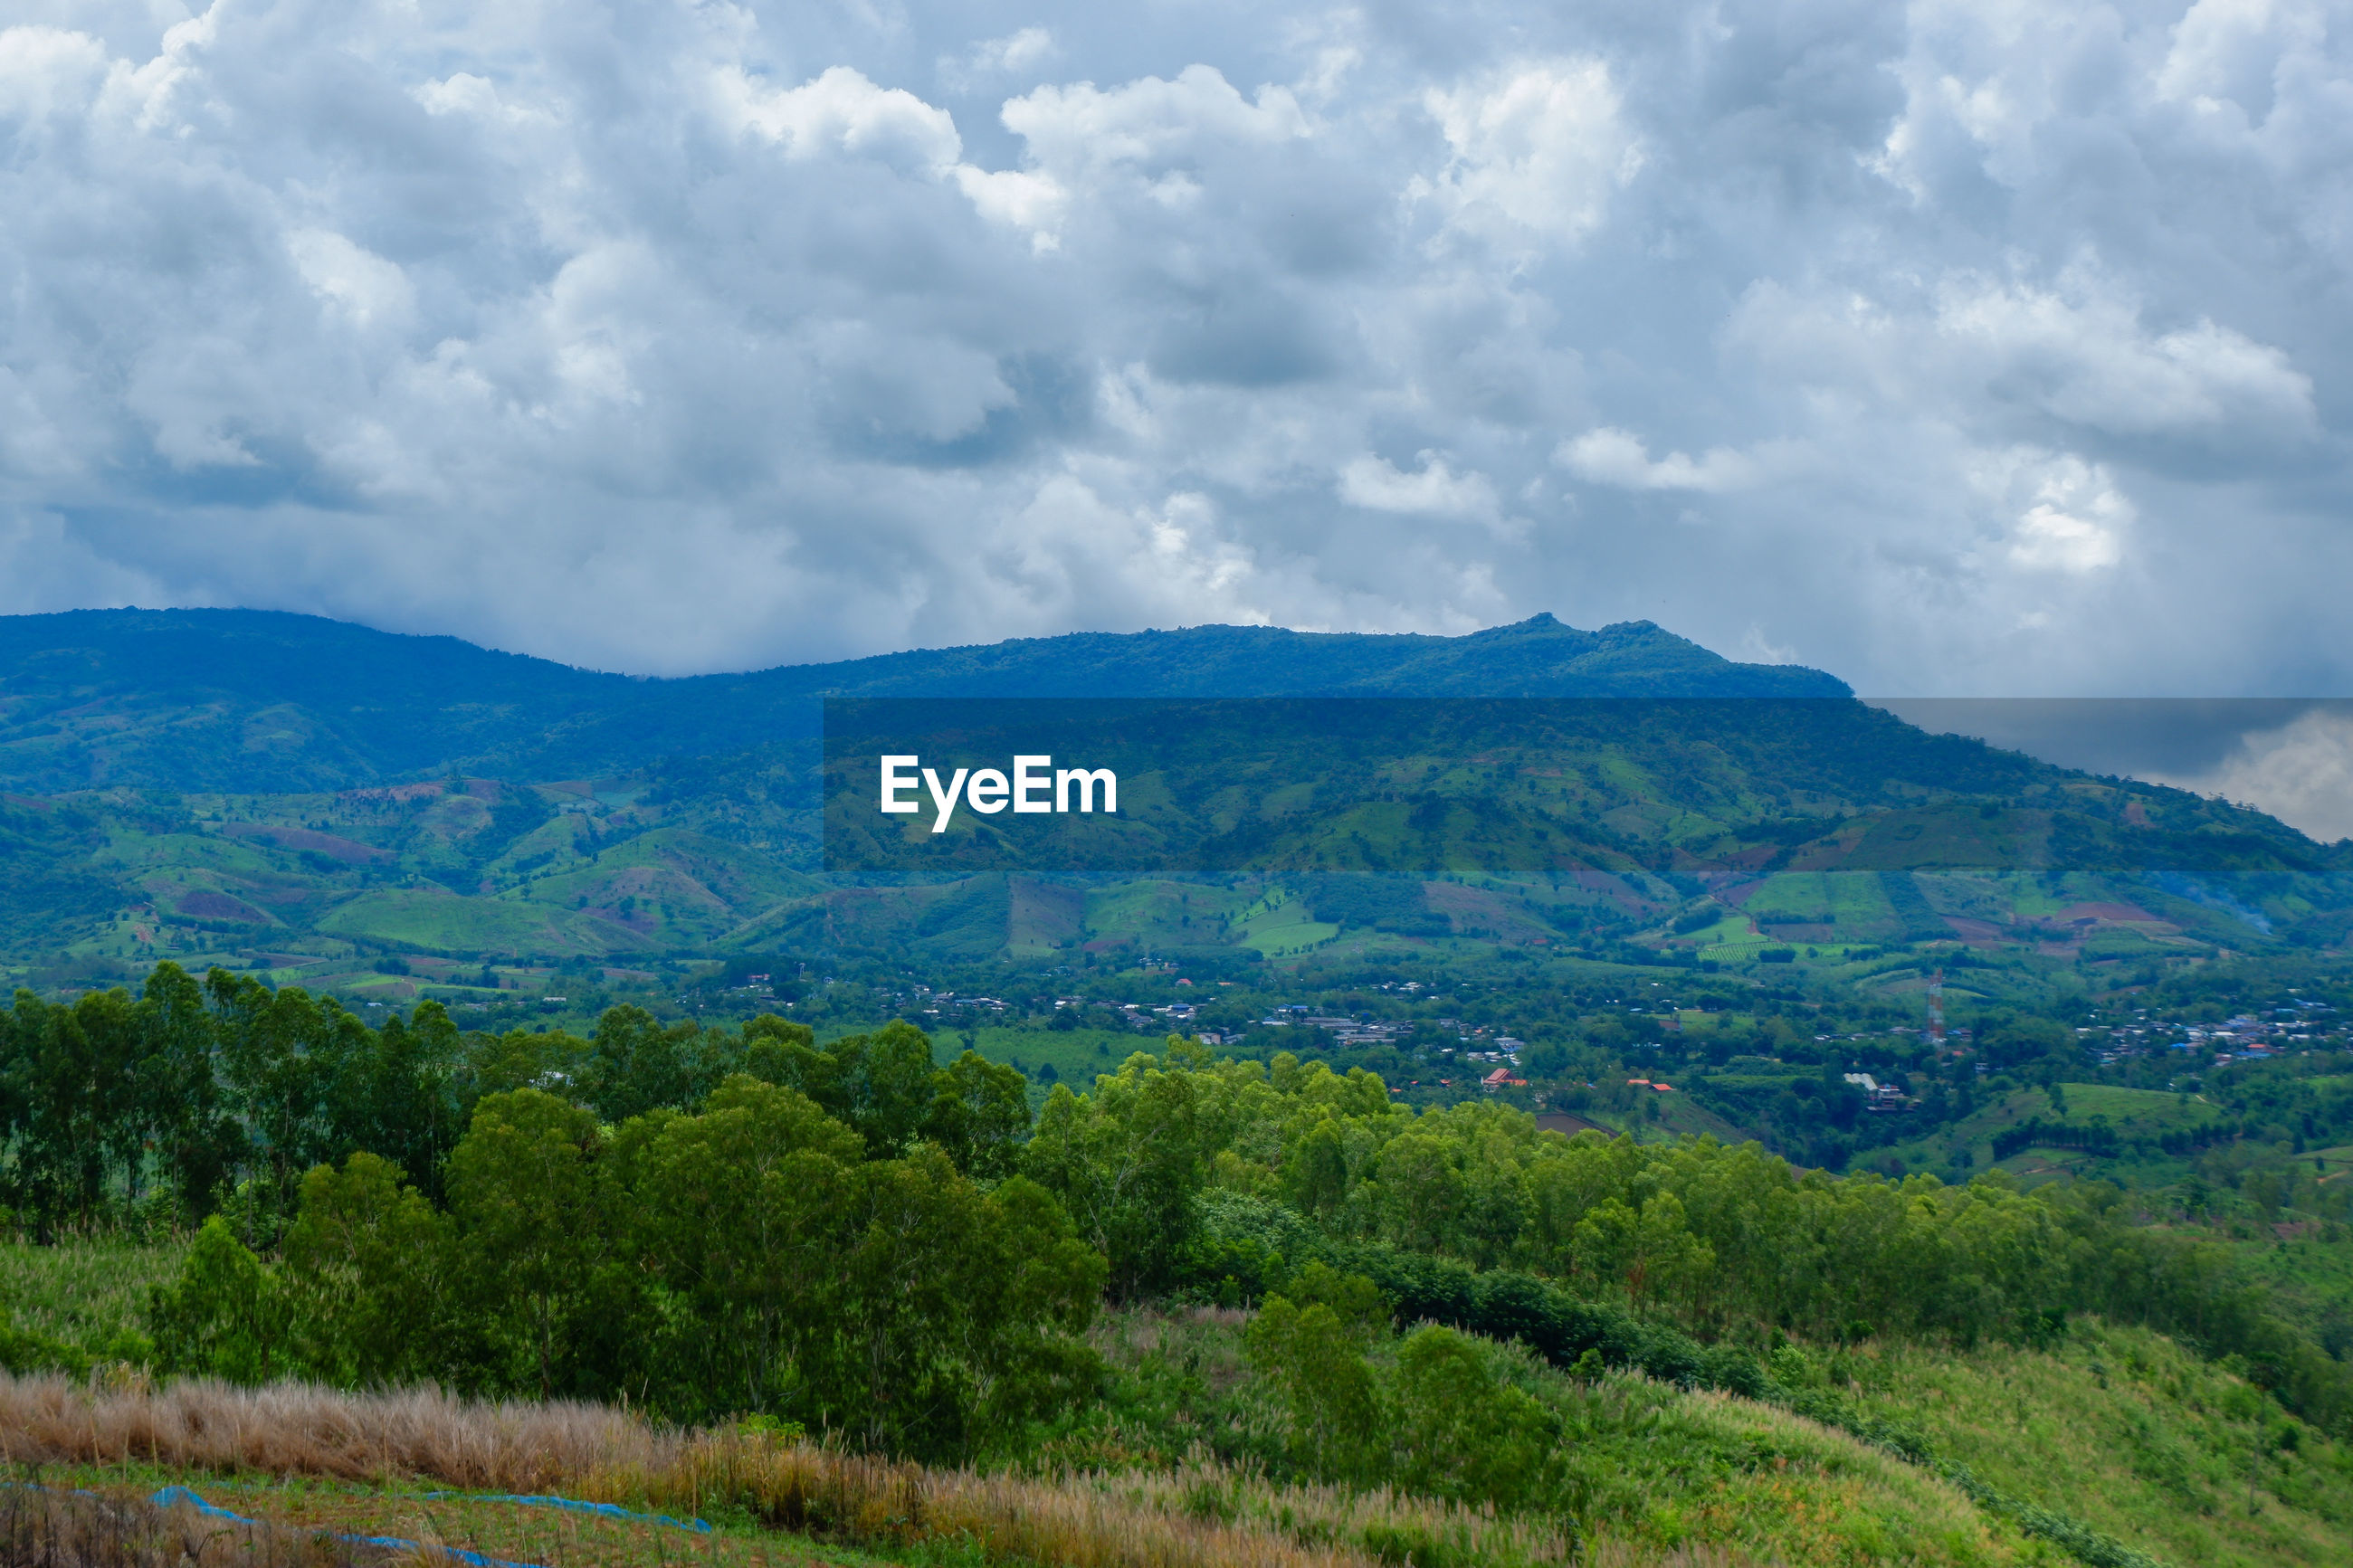 SCENIC VIEW OF LANDSCAPE AND MOUNTAIN AGAINST SKY